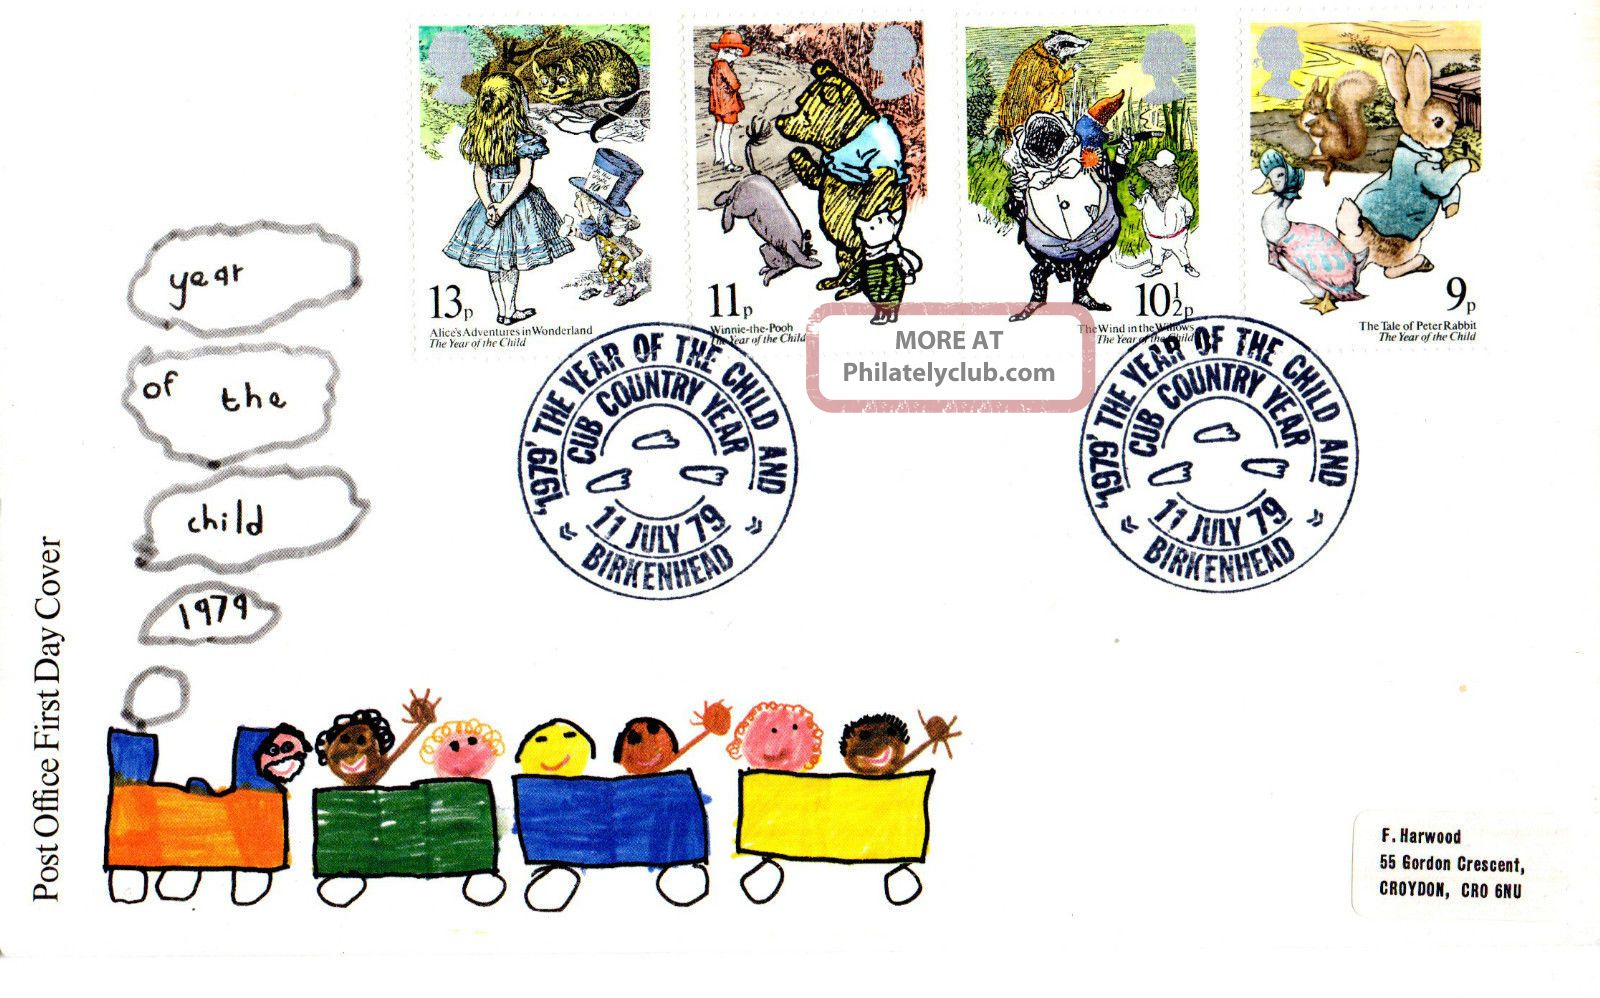 11 July 1979 International Year Of The Child Po Fdc Cub Country Year Birkenhead Topical Stamps photo